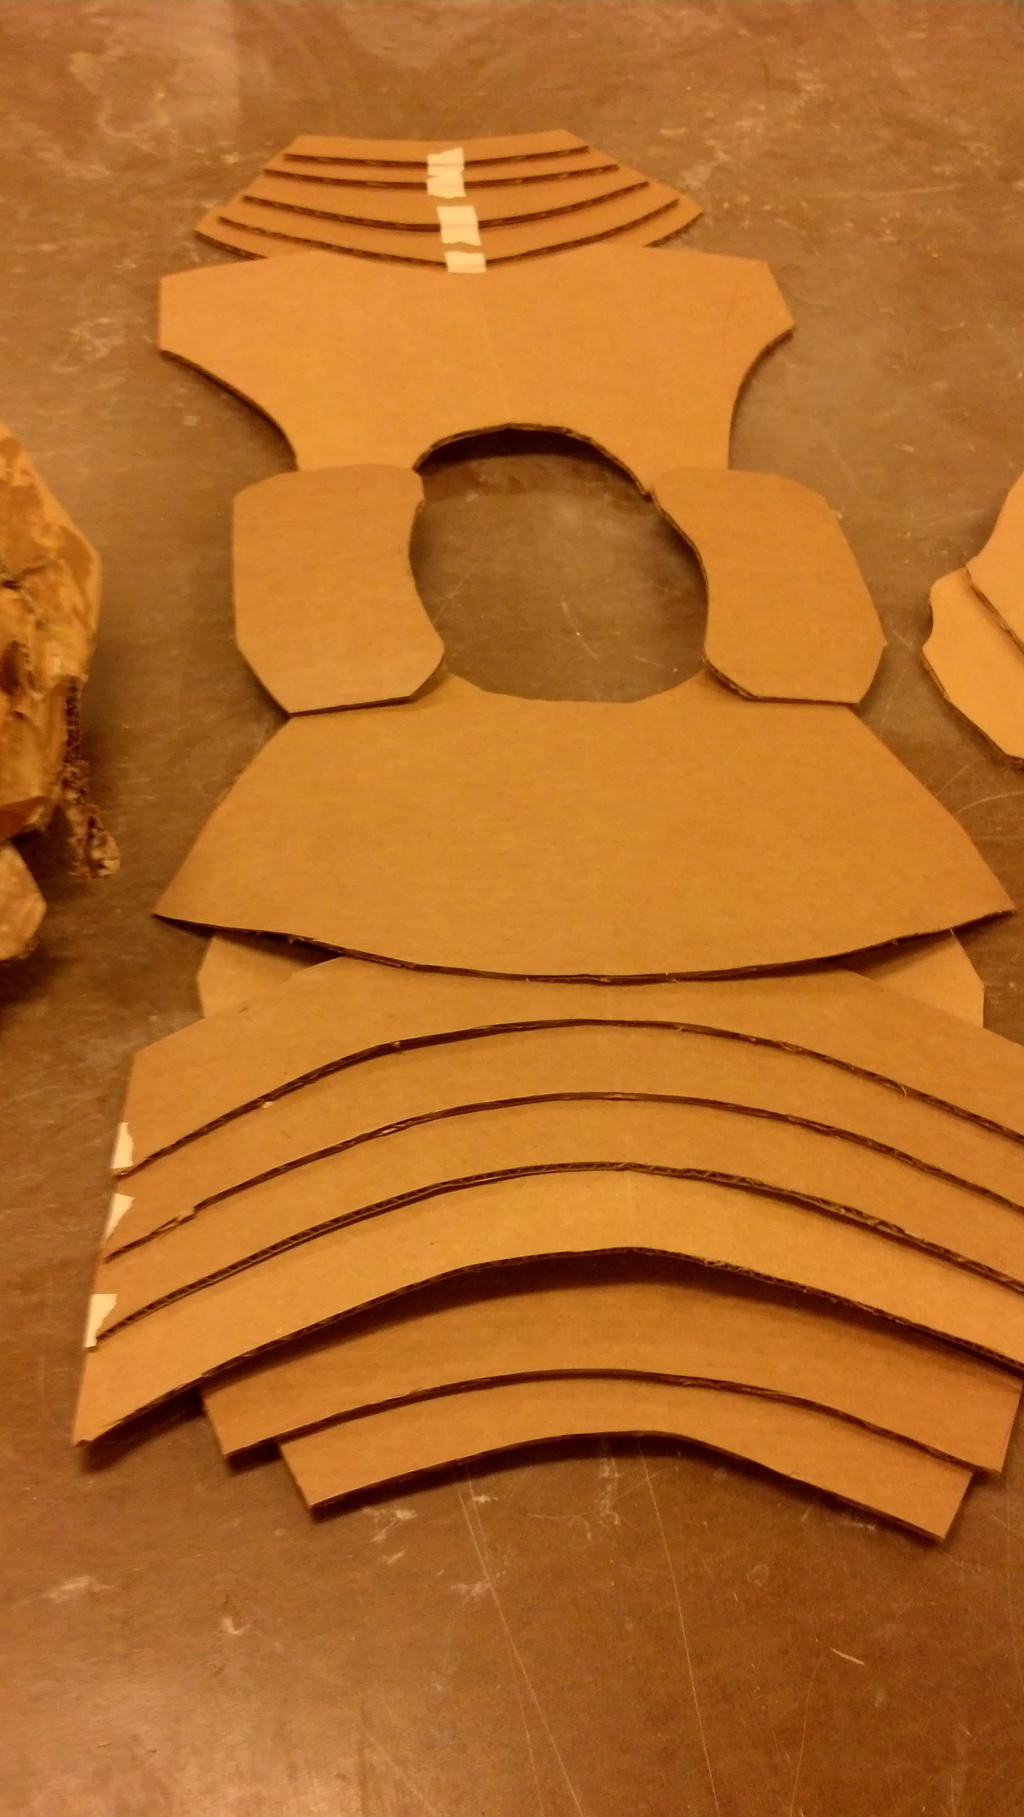 Cardboard samurai armor template by w00stersam on deviantart for Cardboard armour template